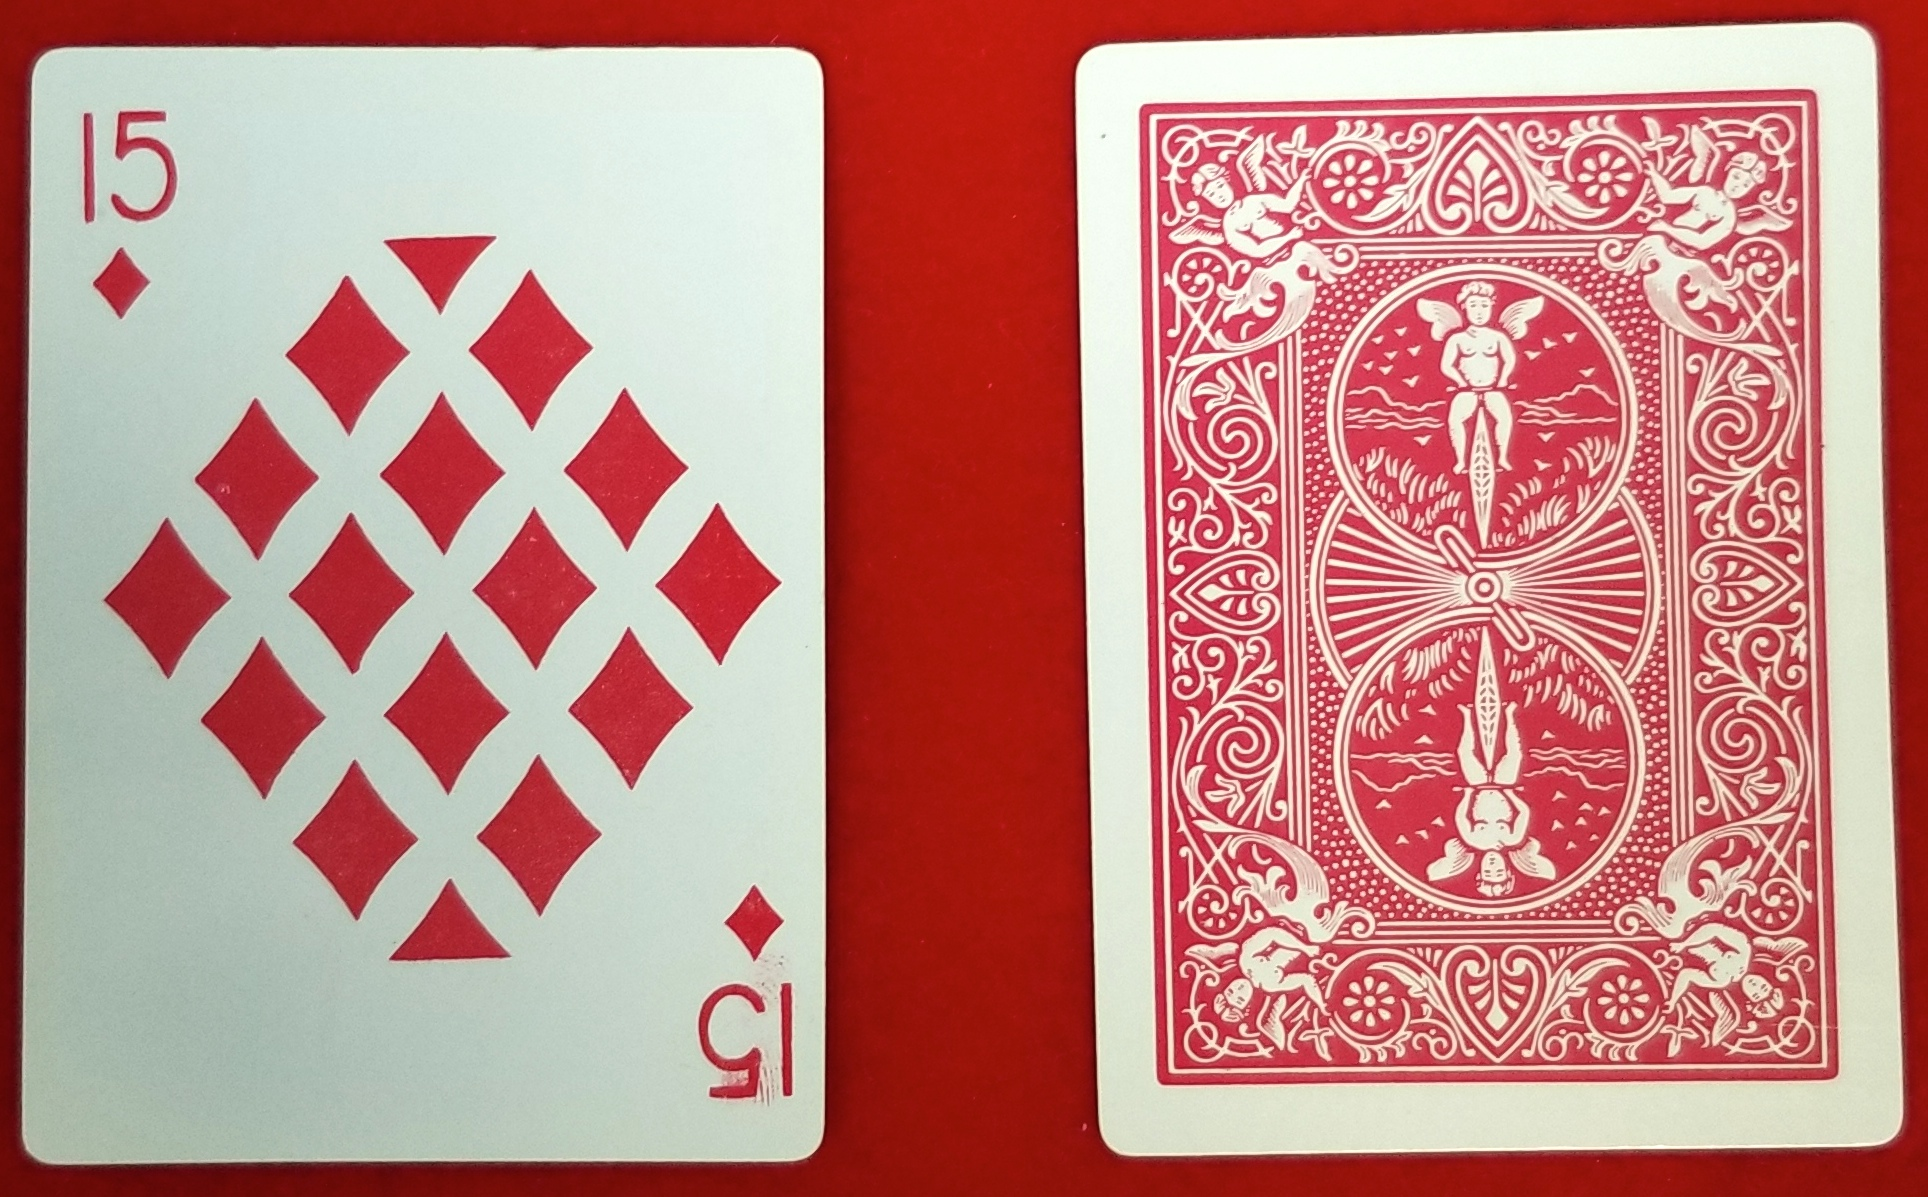 Playing Cards - 15 Diamonds - Imprints - One Dozen